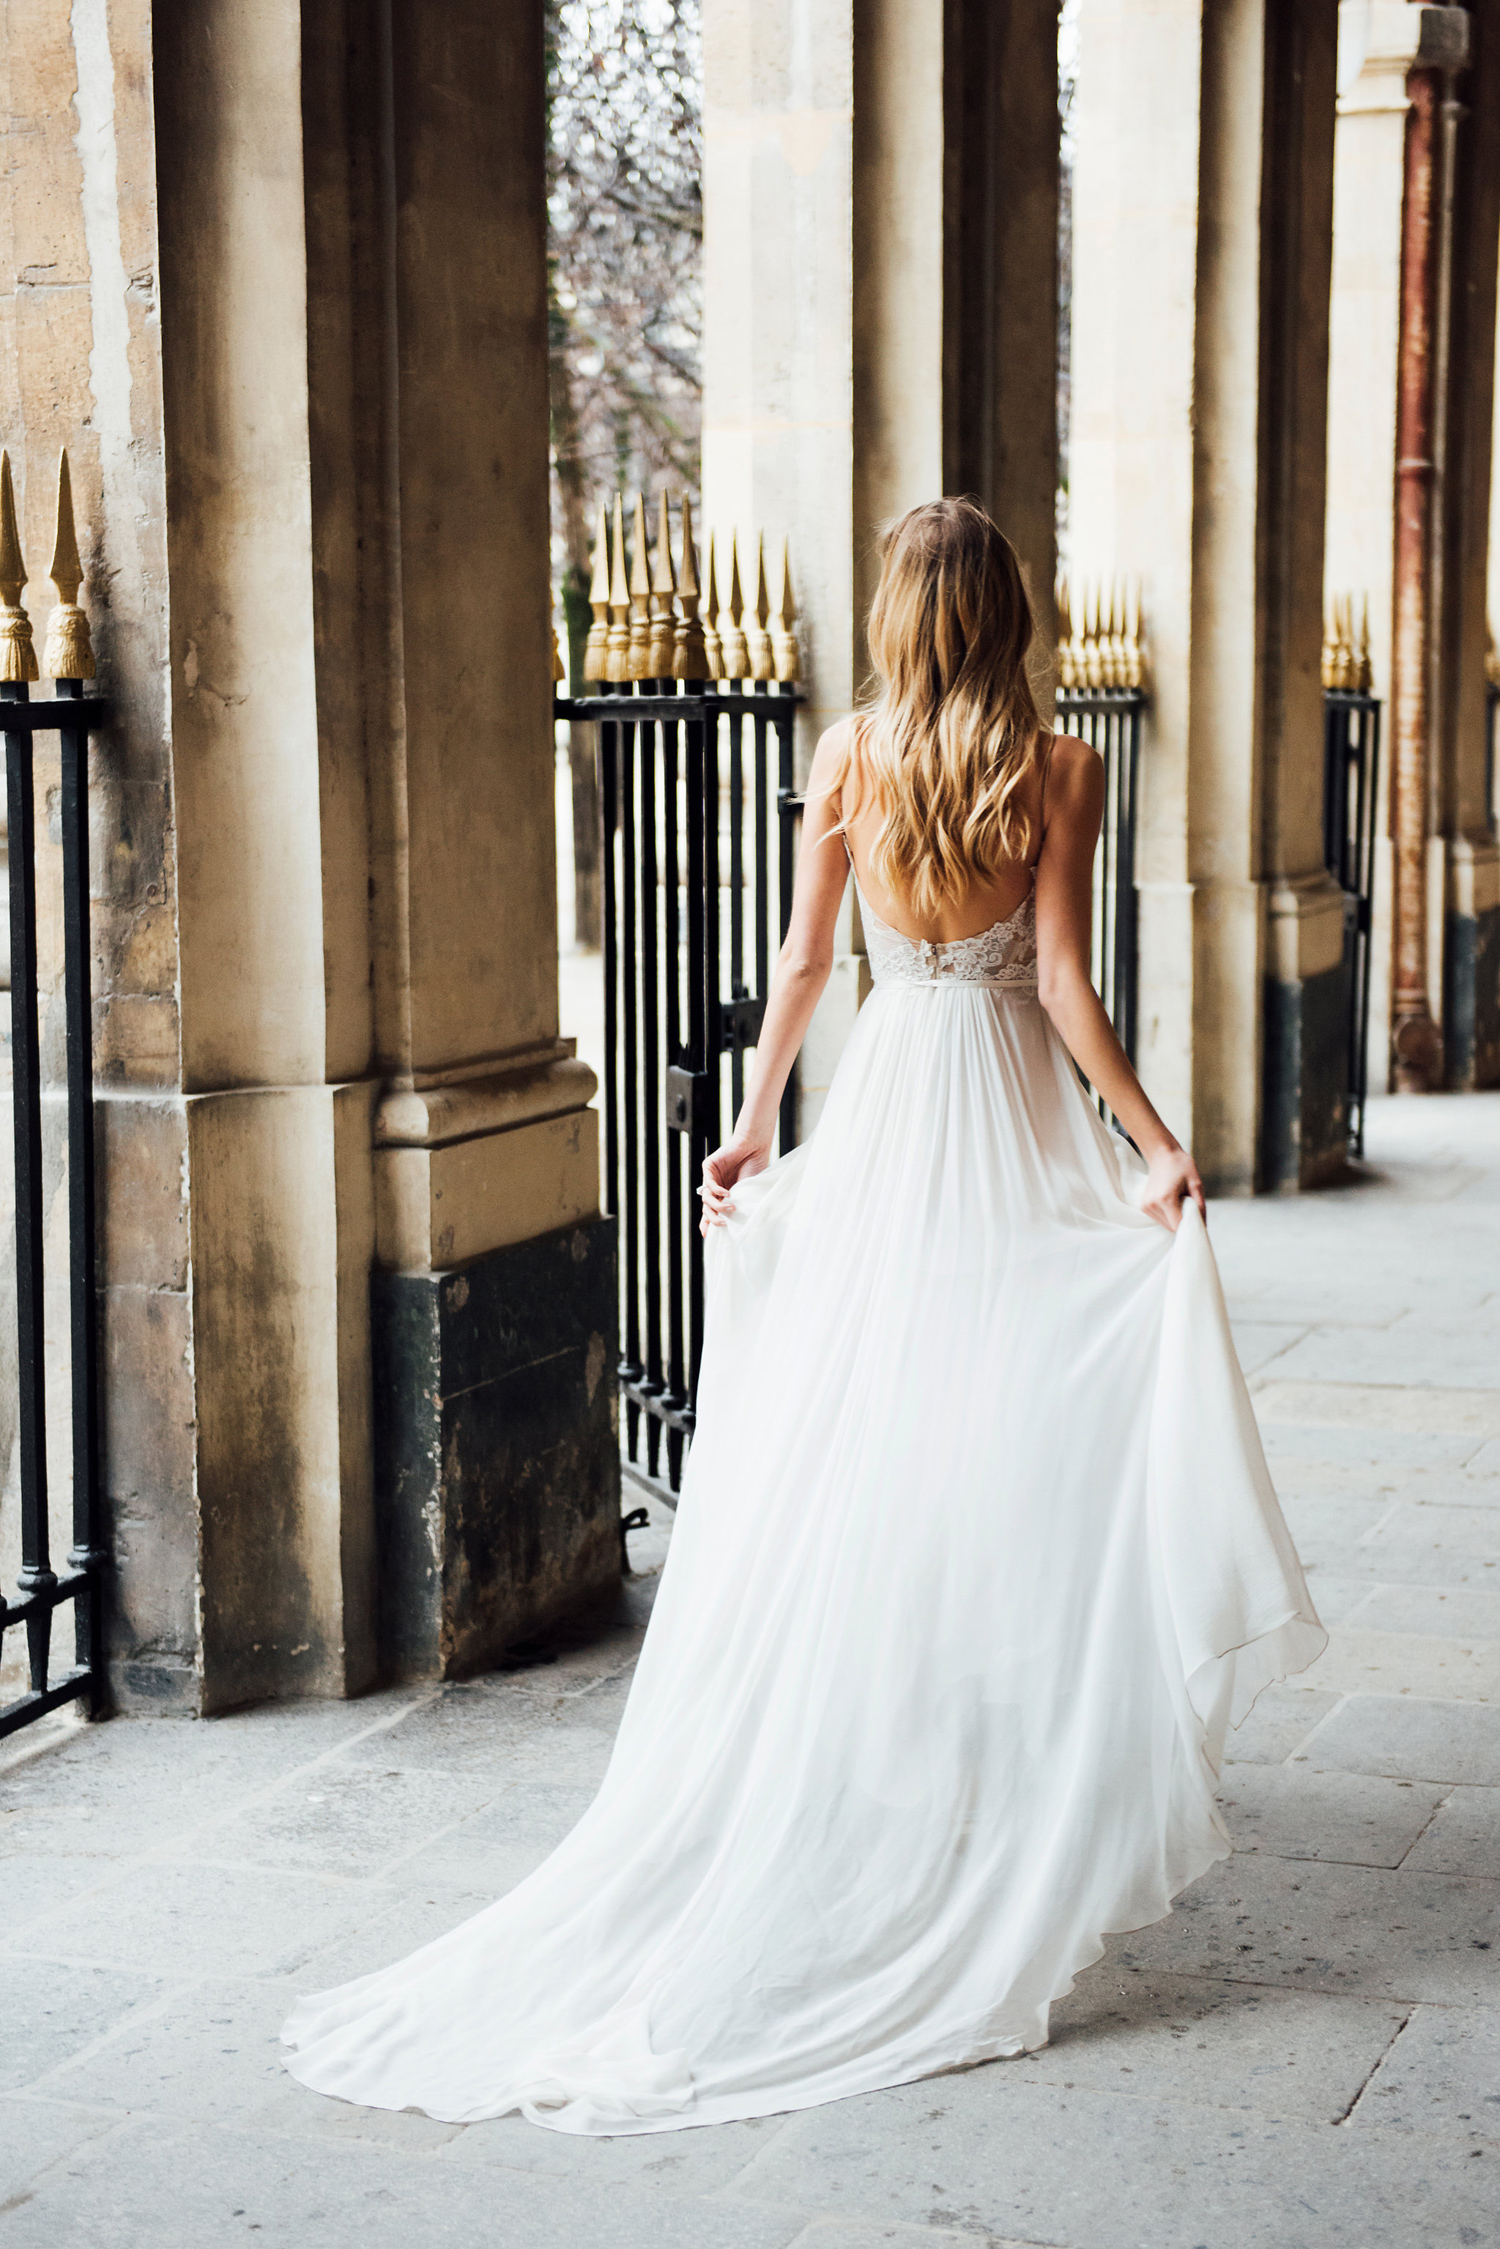 katie mitchell monique lhuillier bridal paris france wedding photographer_19.jpg